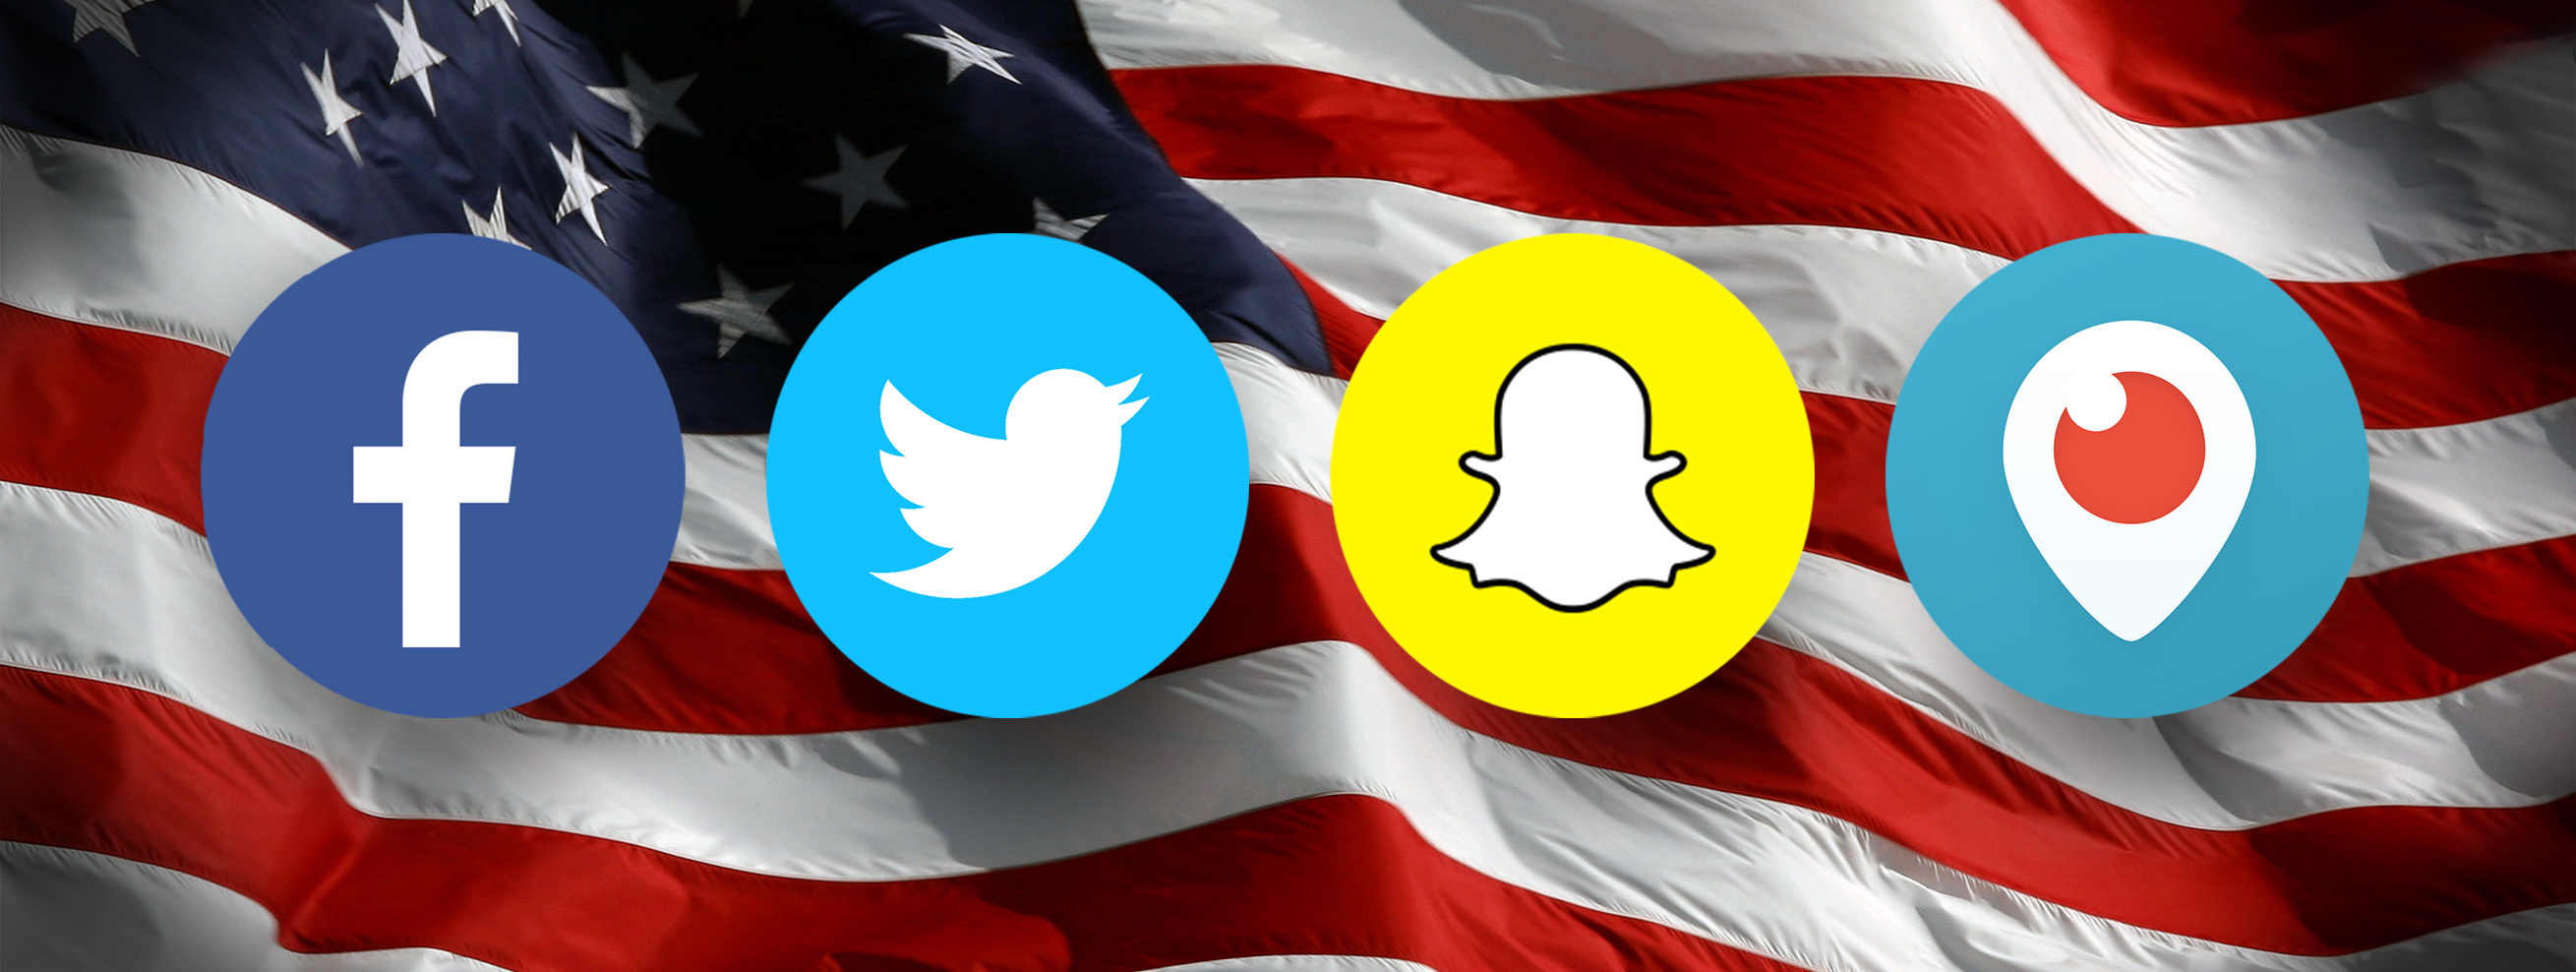 facebook, twitter, snapchat, and periscope icons in front of a waving American flag